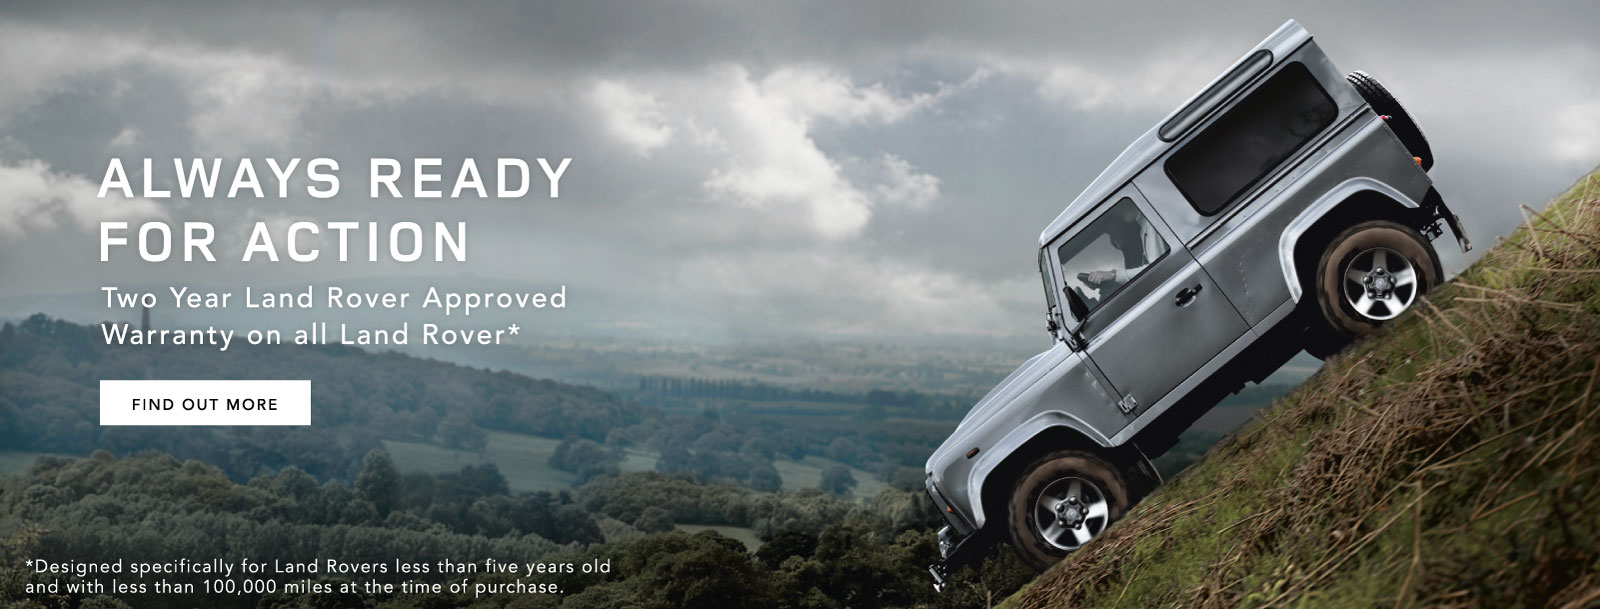 Land Rover 2 Year Warranty